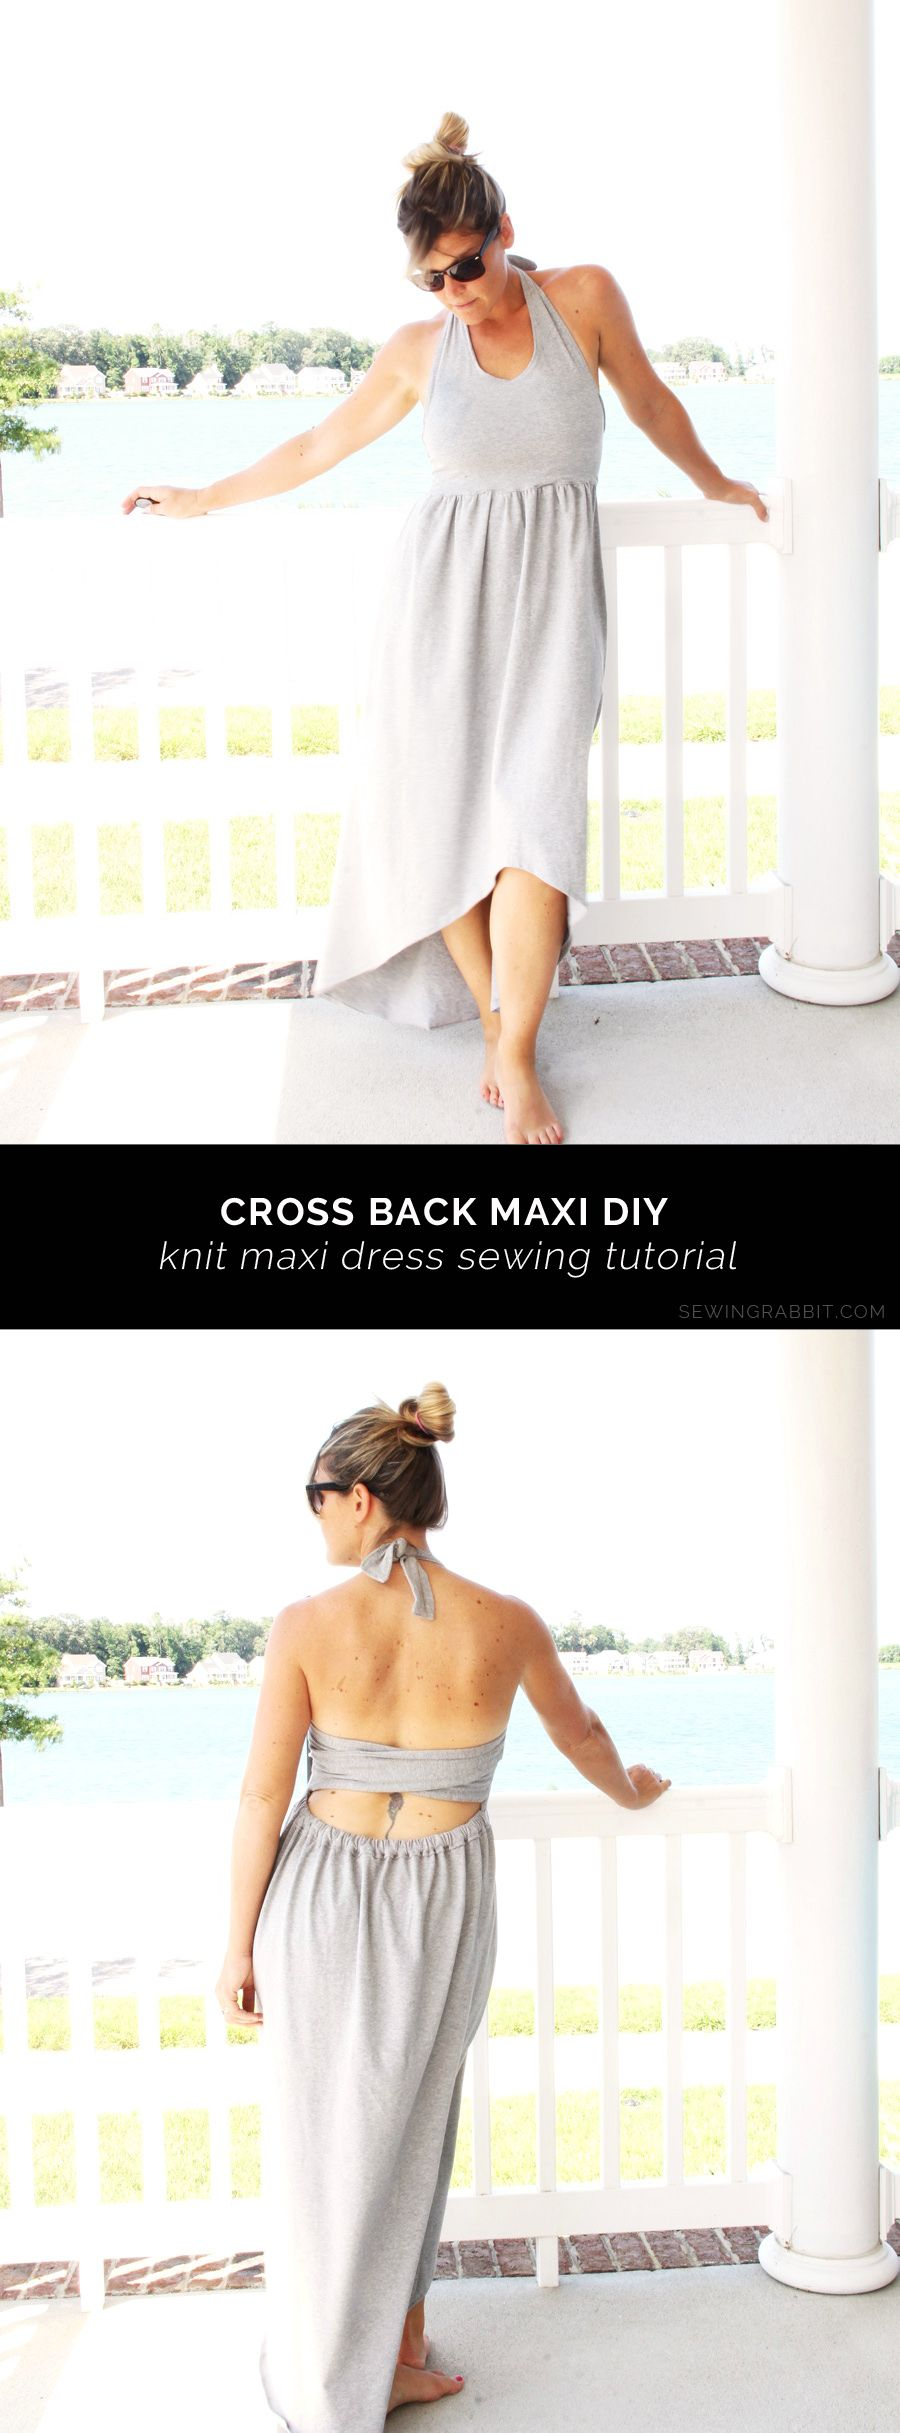 Cross back maxi rabbit sewing stitches and sewing ideas